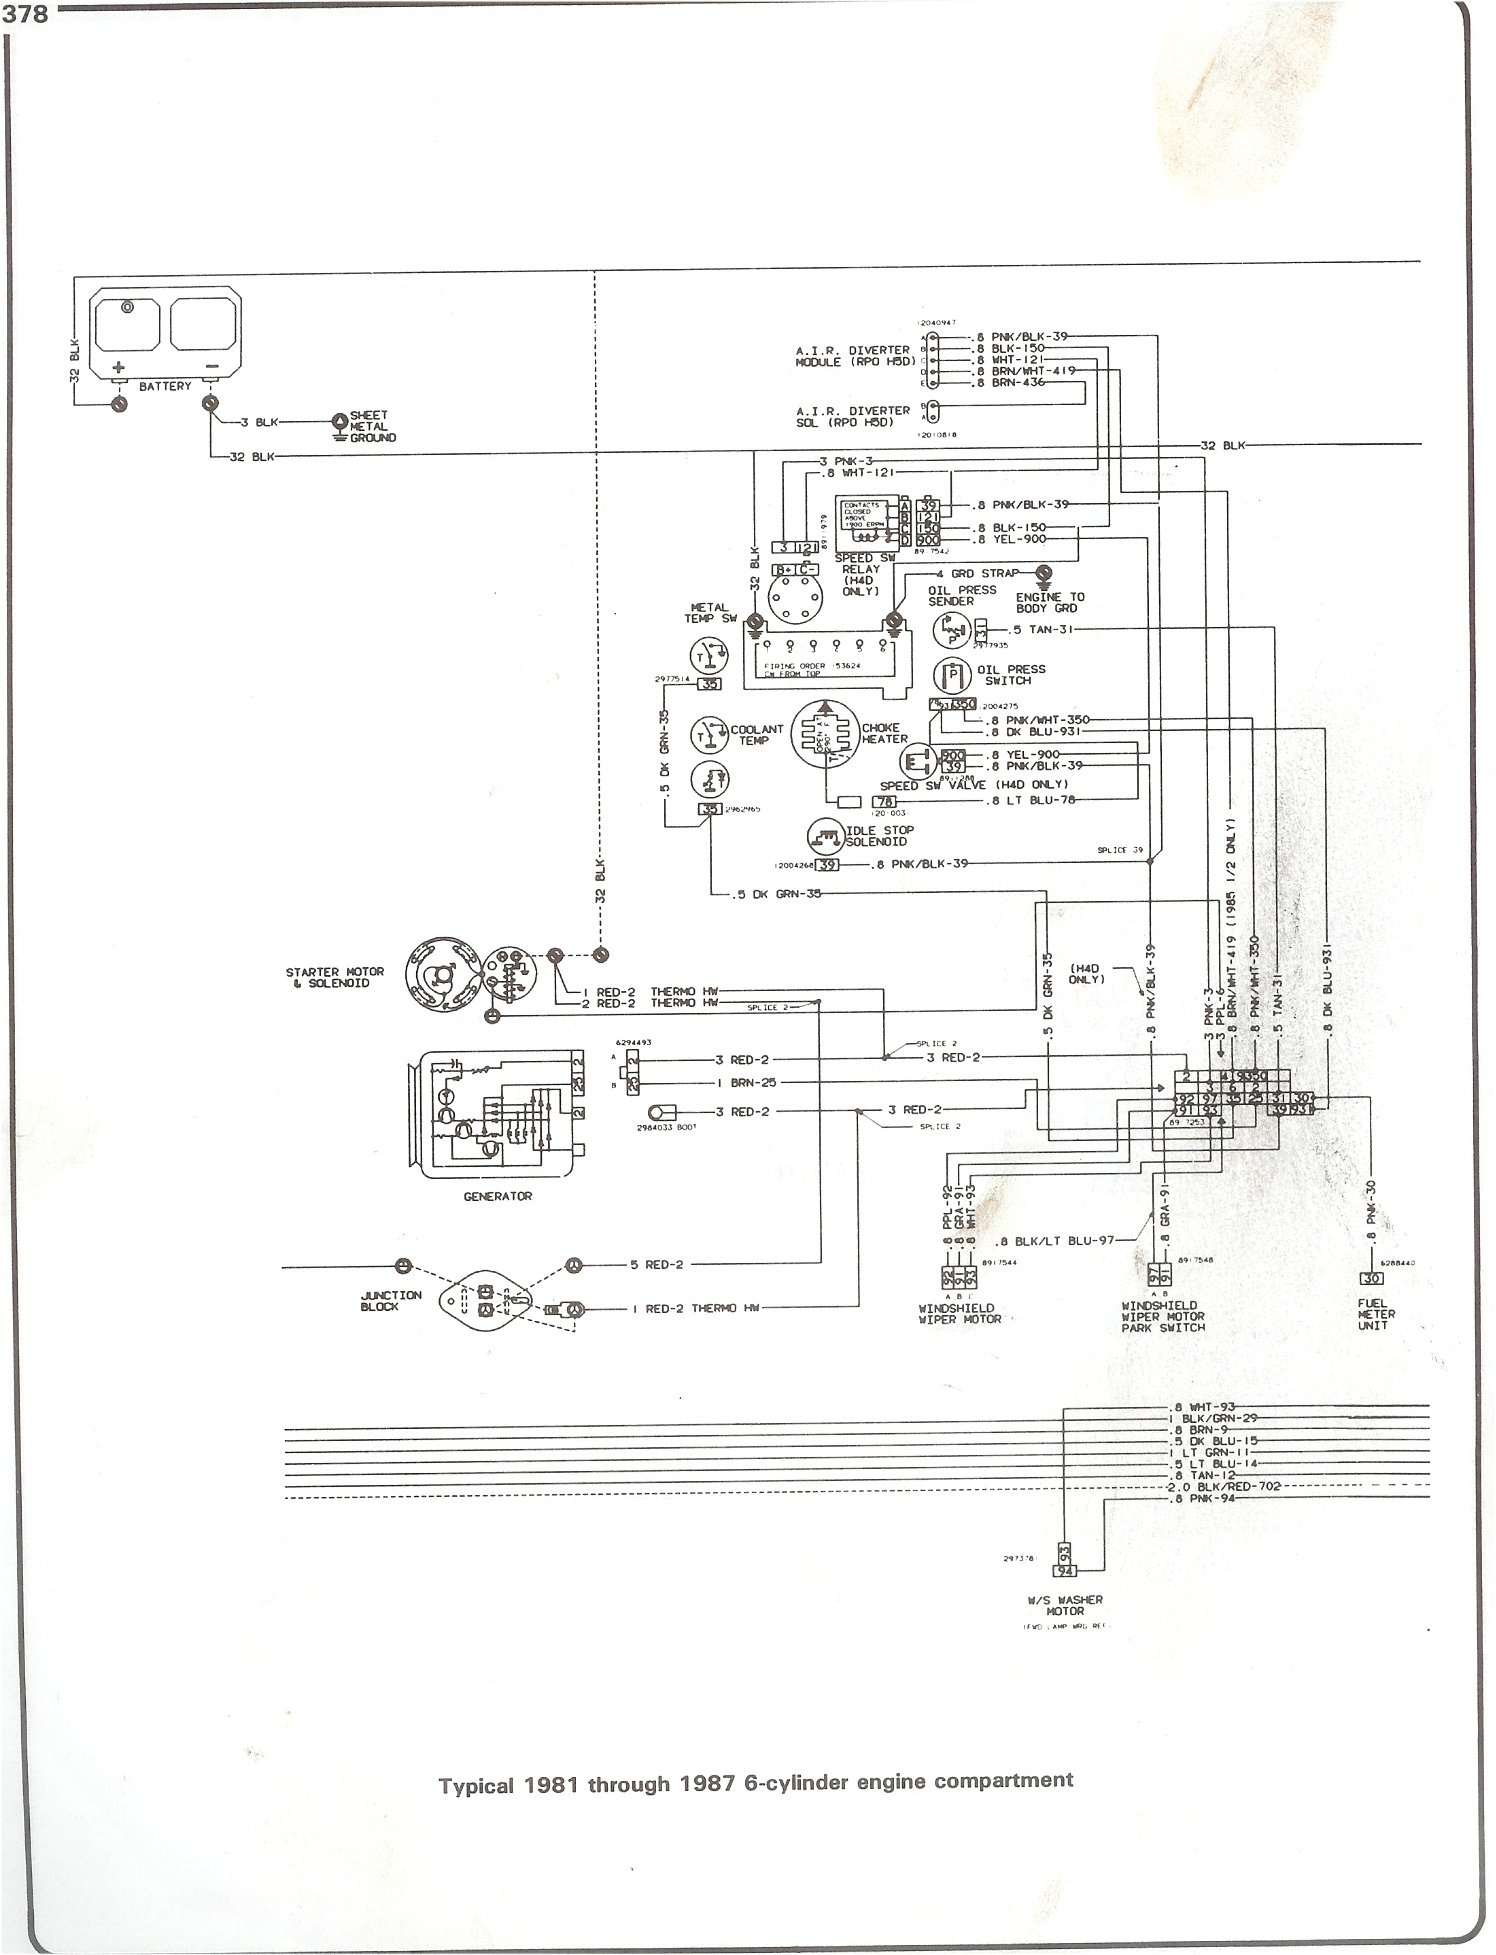 85 Gmc Wiring Diagram Schemes Dimmer Switch Complete 73 87 Diagrams Rh Forum 87chevytrucks Com 2006 Sierra Schematic Van